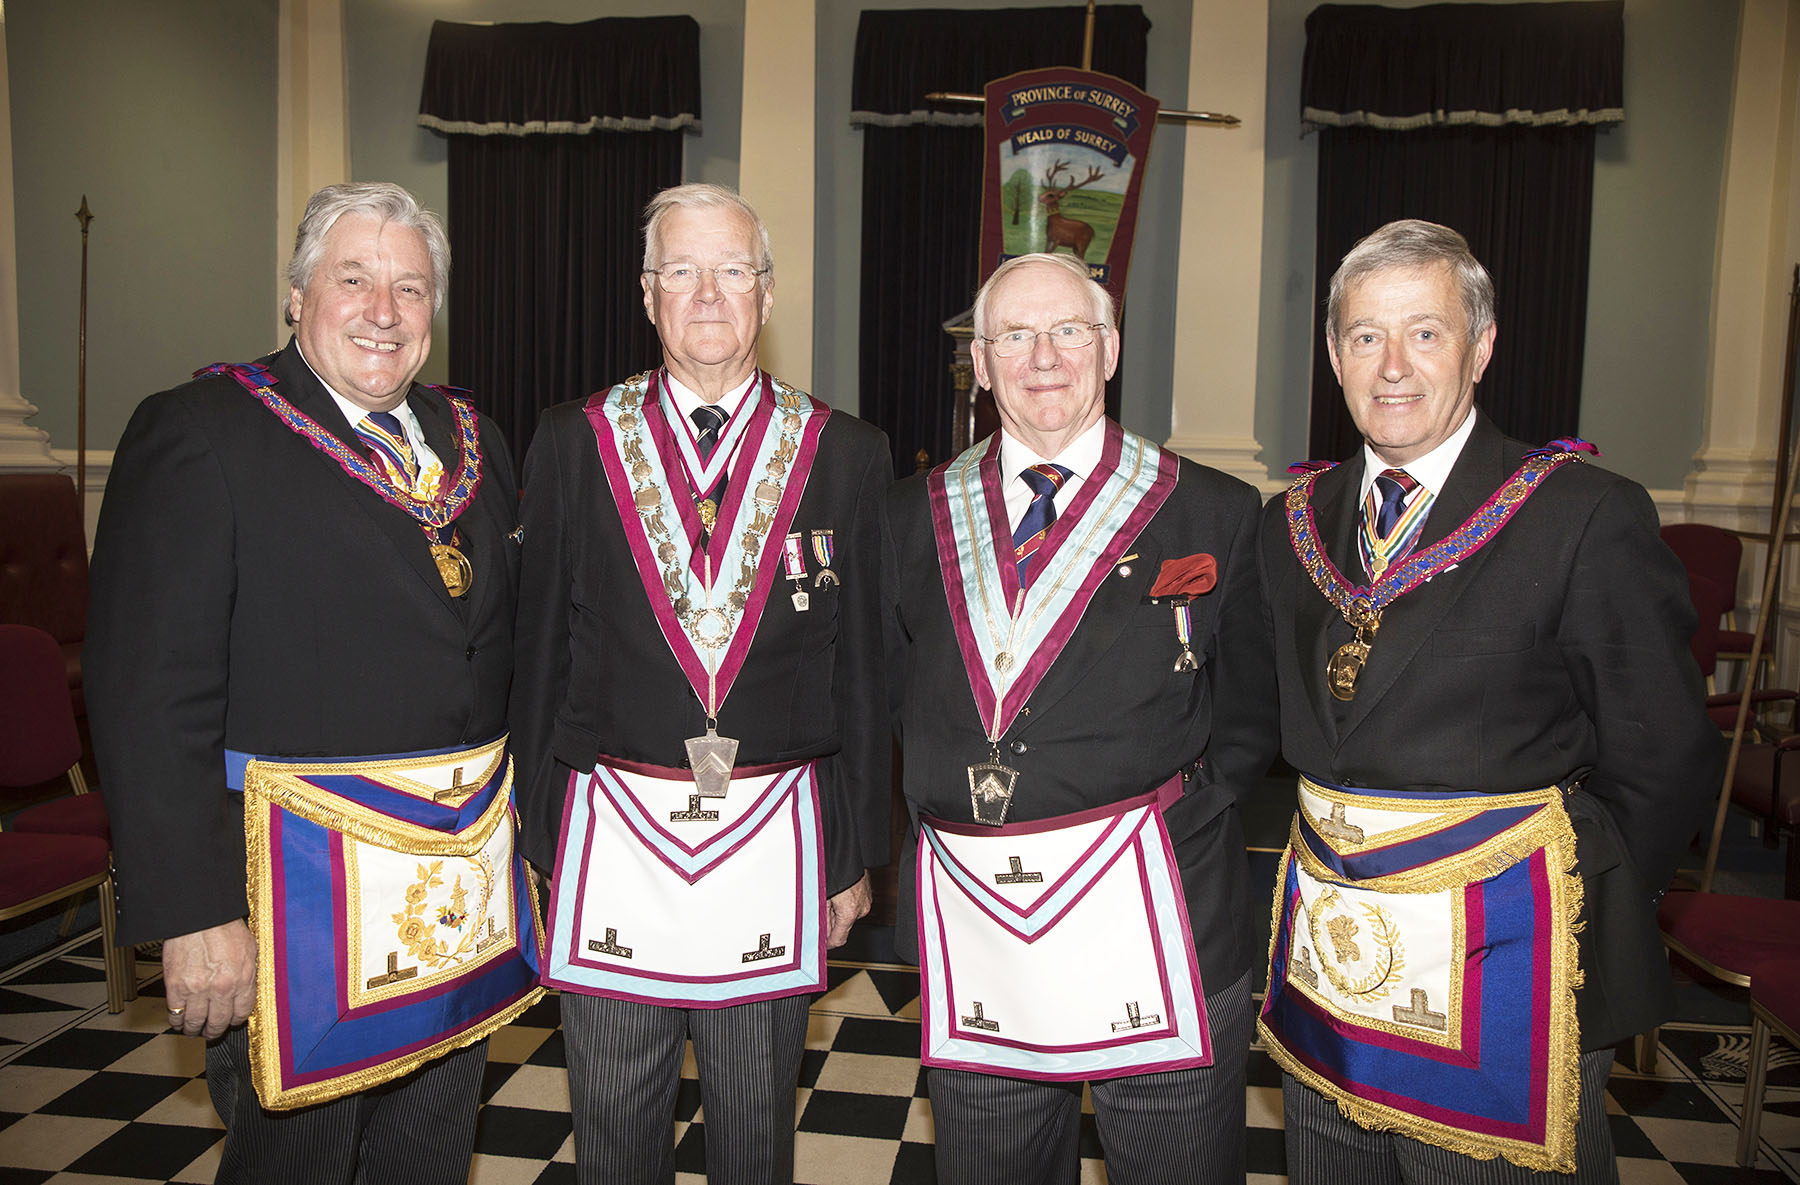 Executive visit to Weald of Surrey Lodge